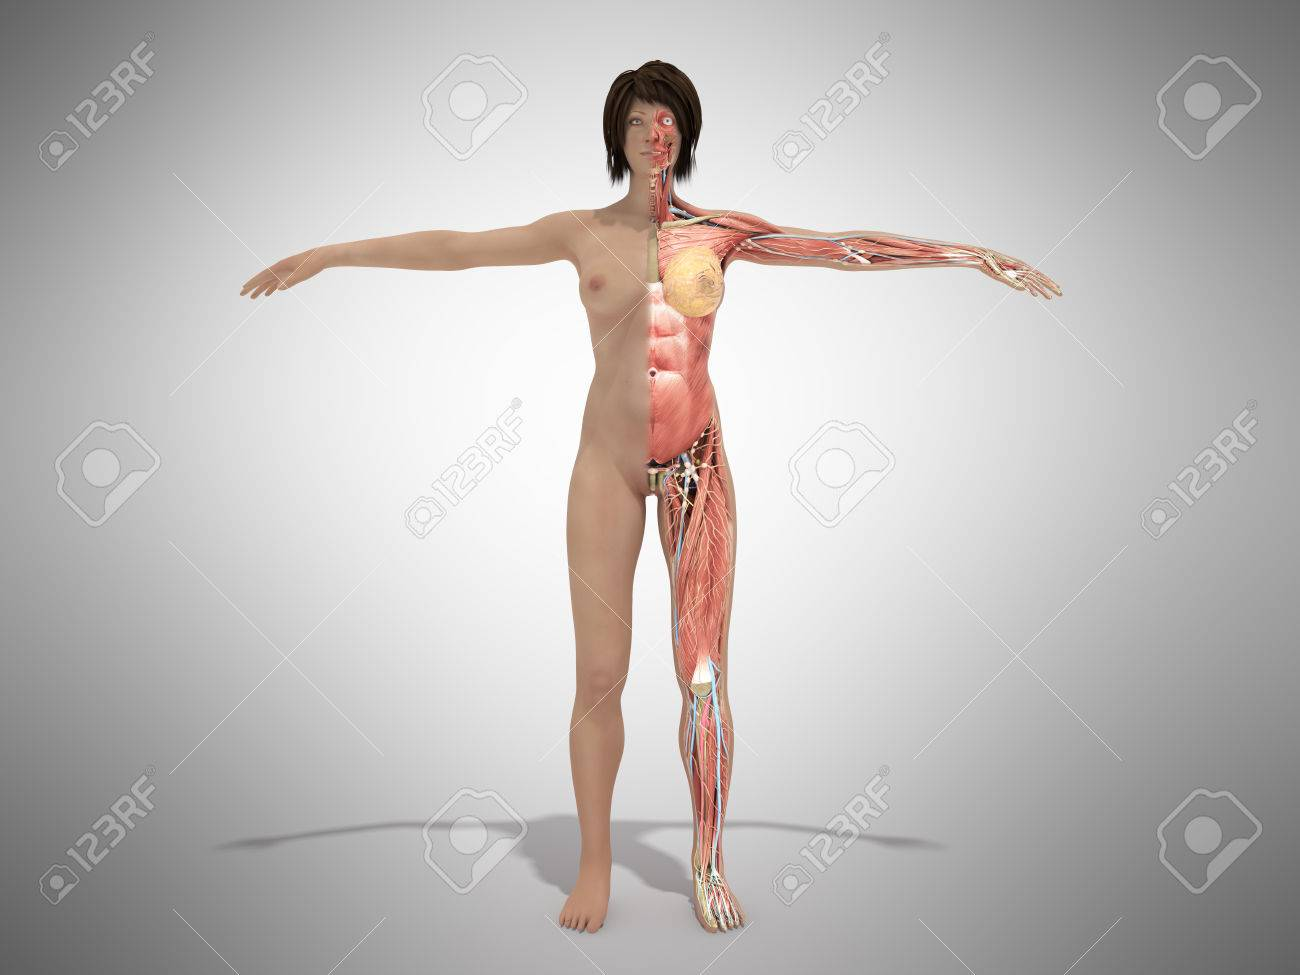 A Female Nude Body Anatomy For Books 3d Illustration On Grey Stock